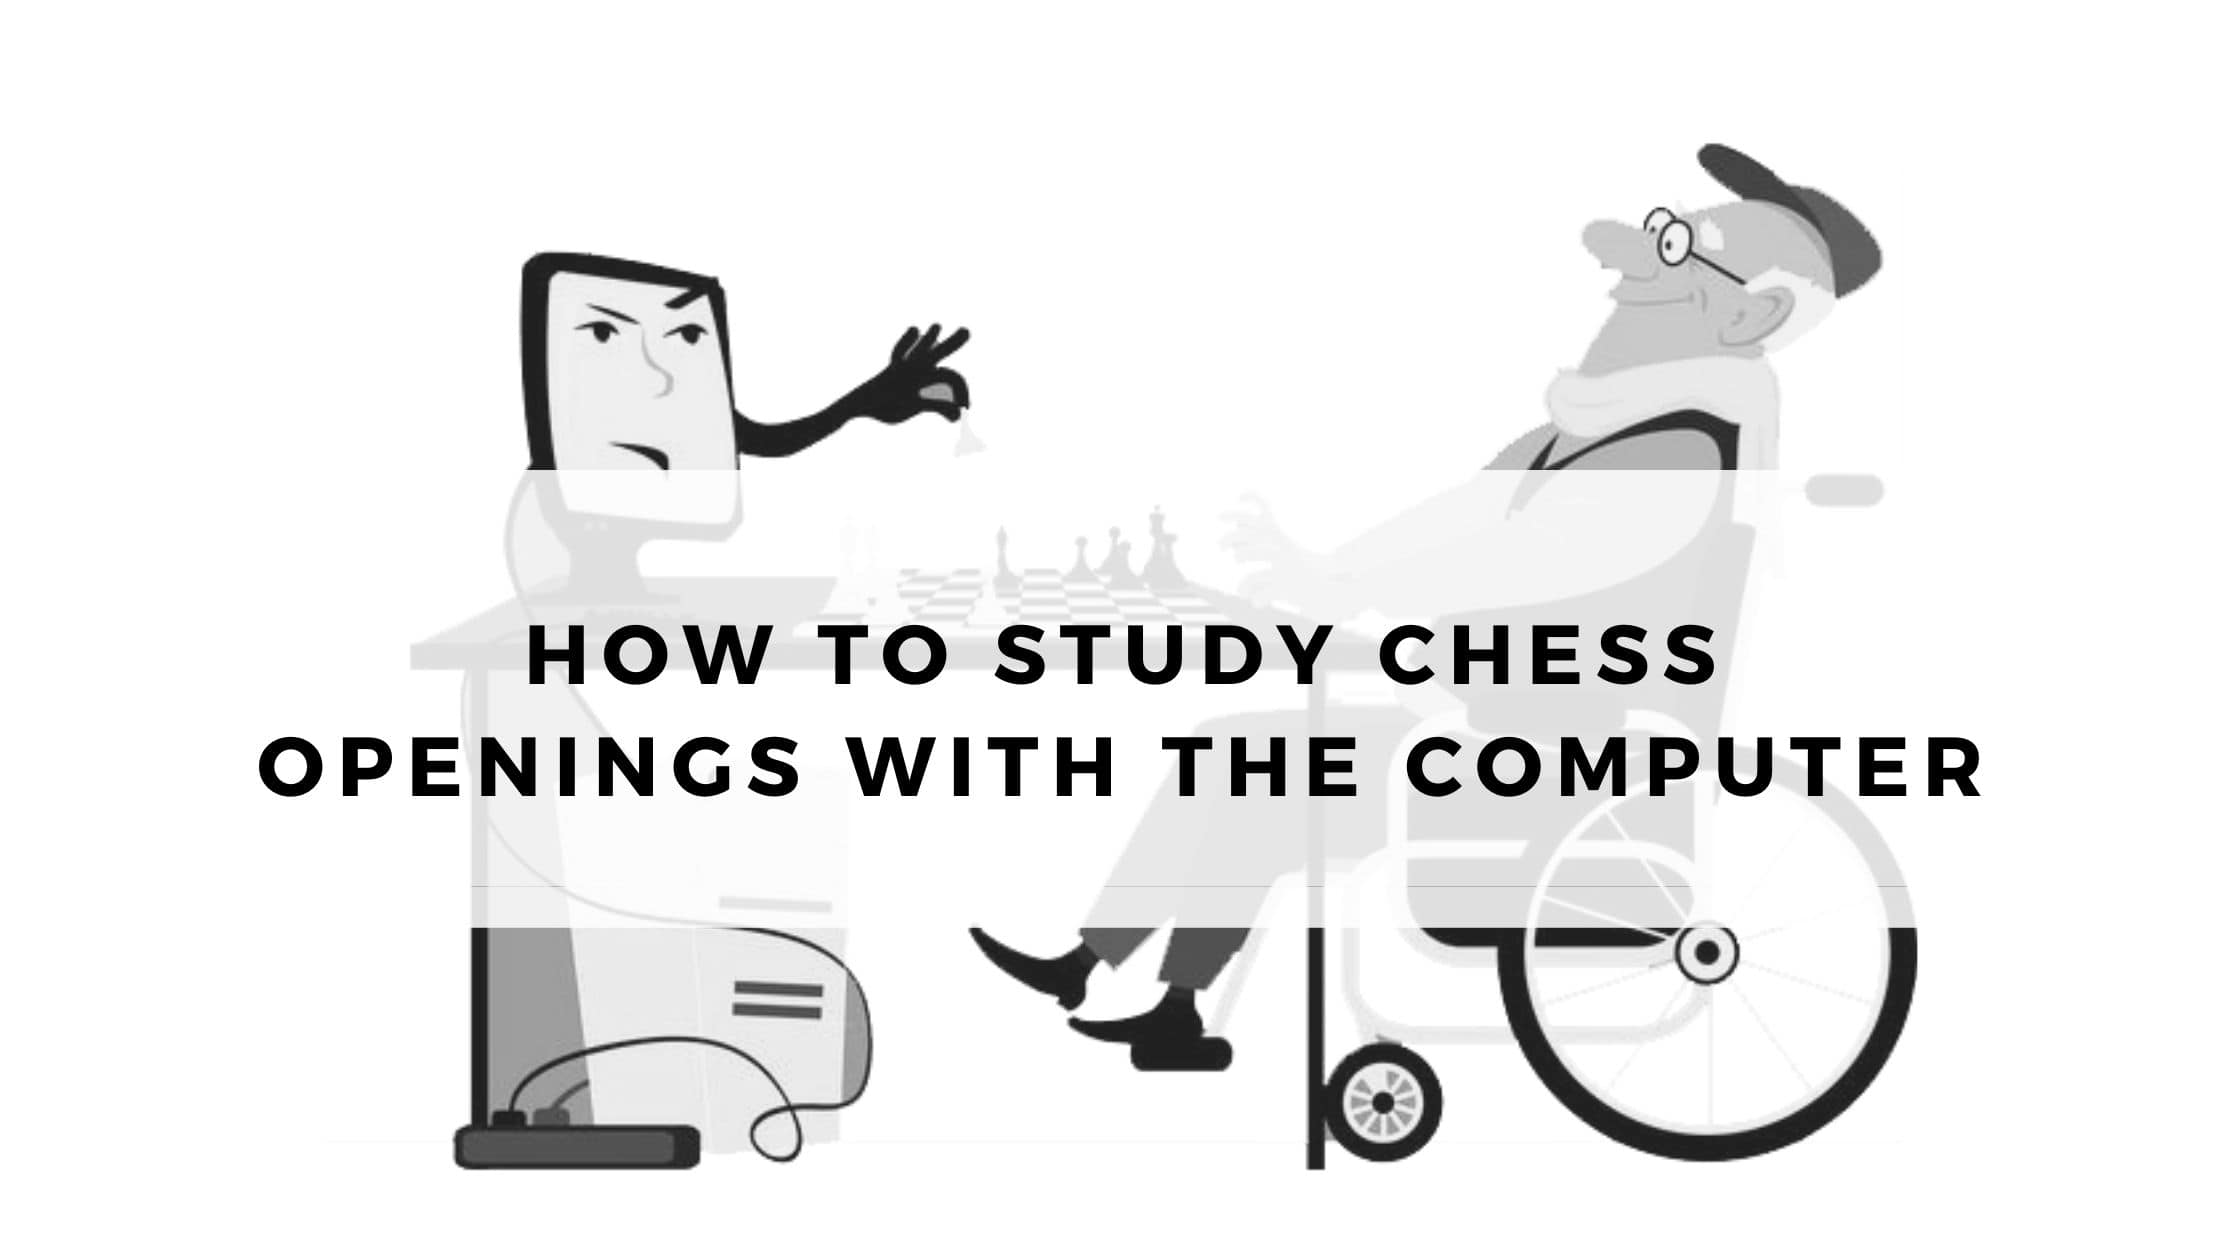 How to Study Chess Openings with the Computer